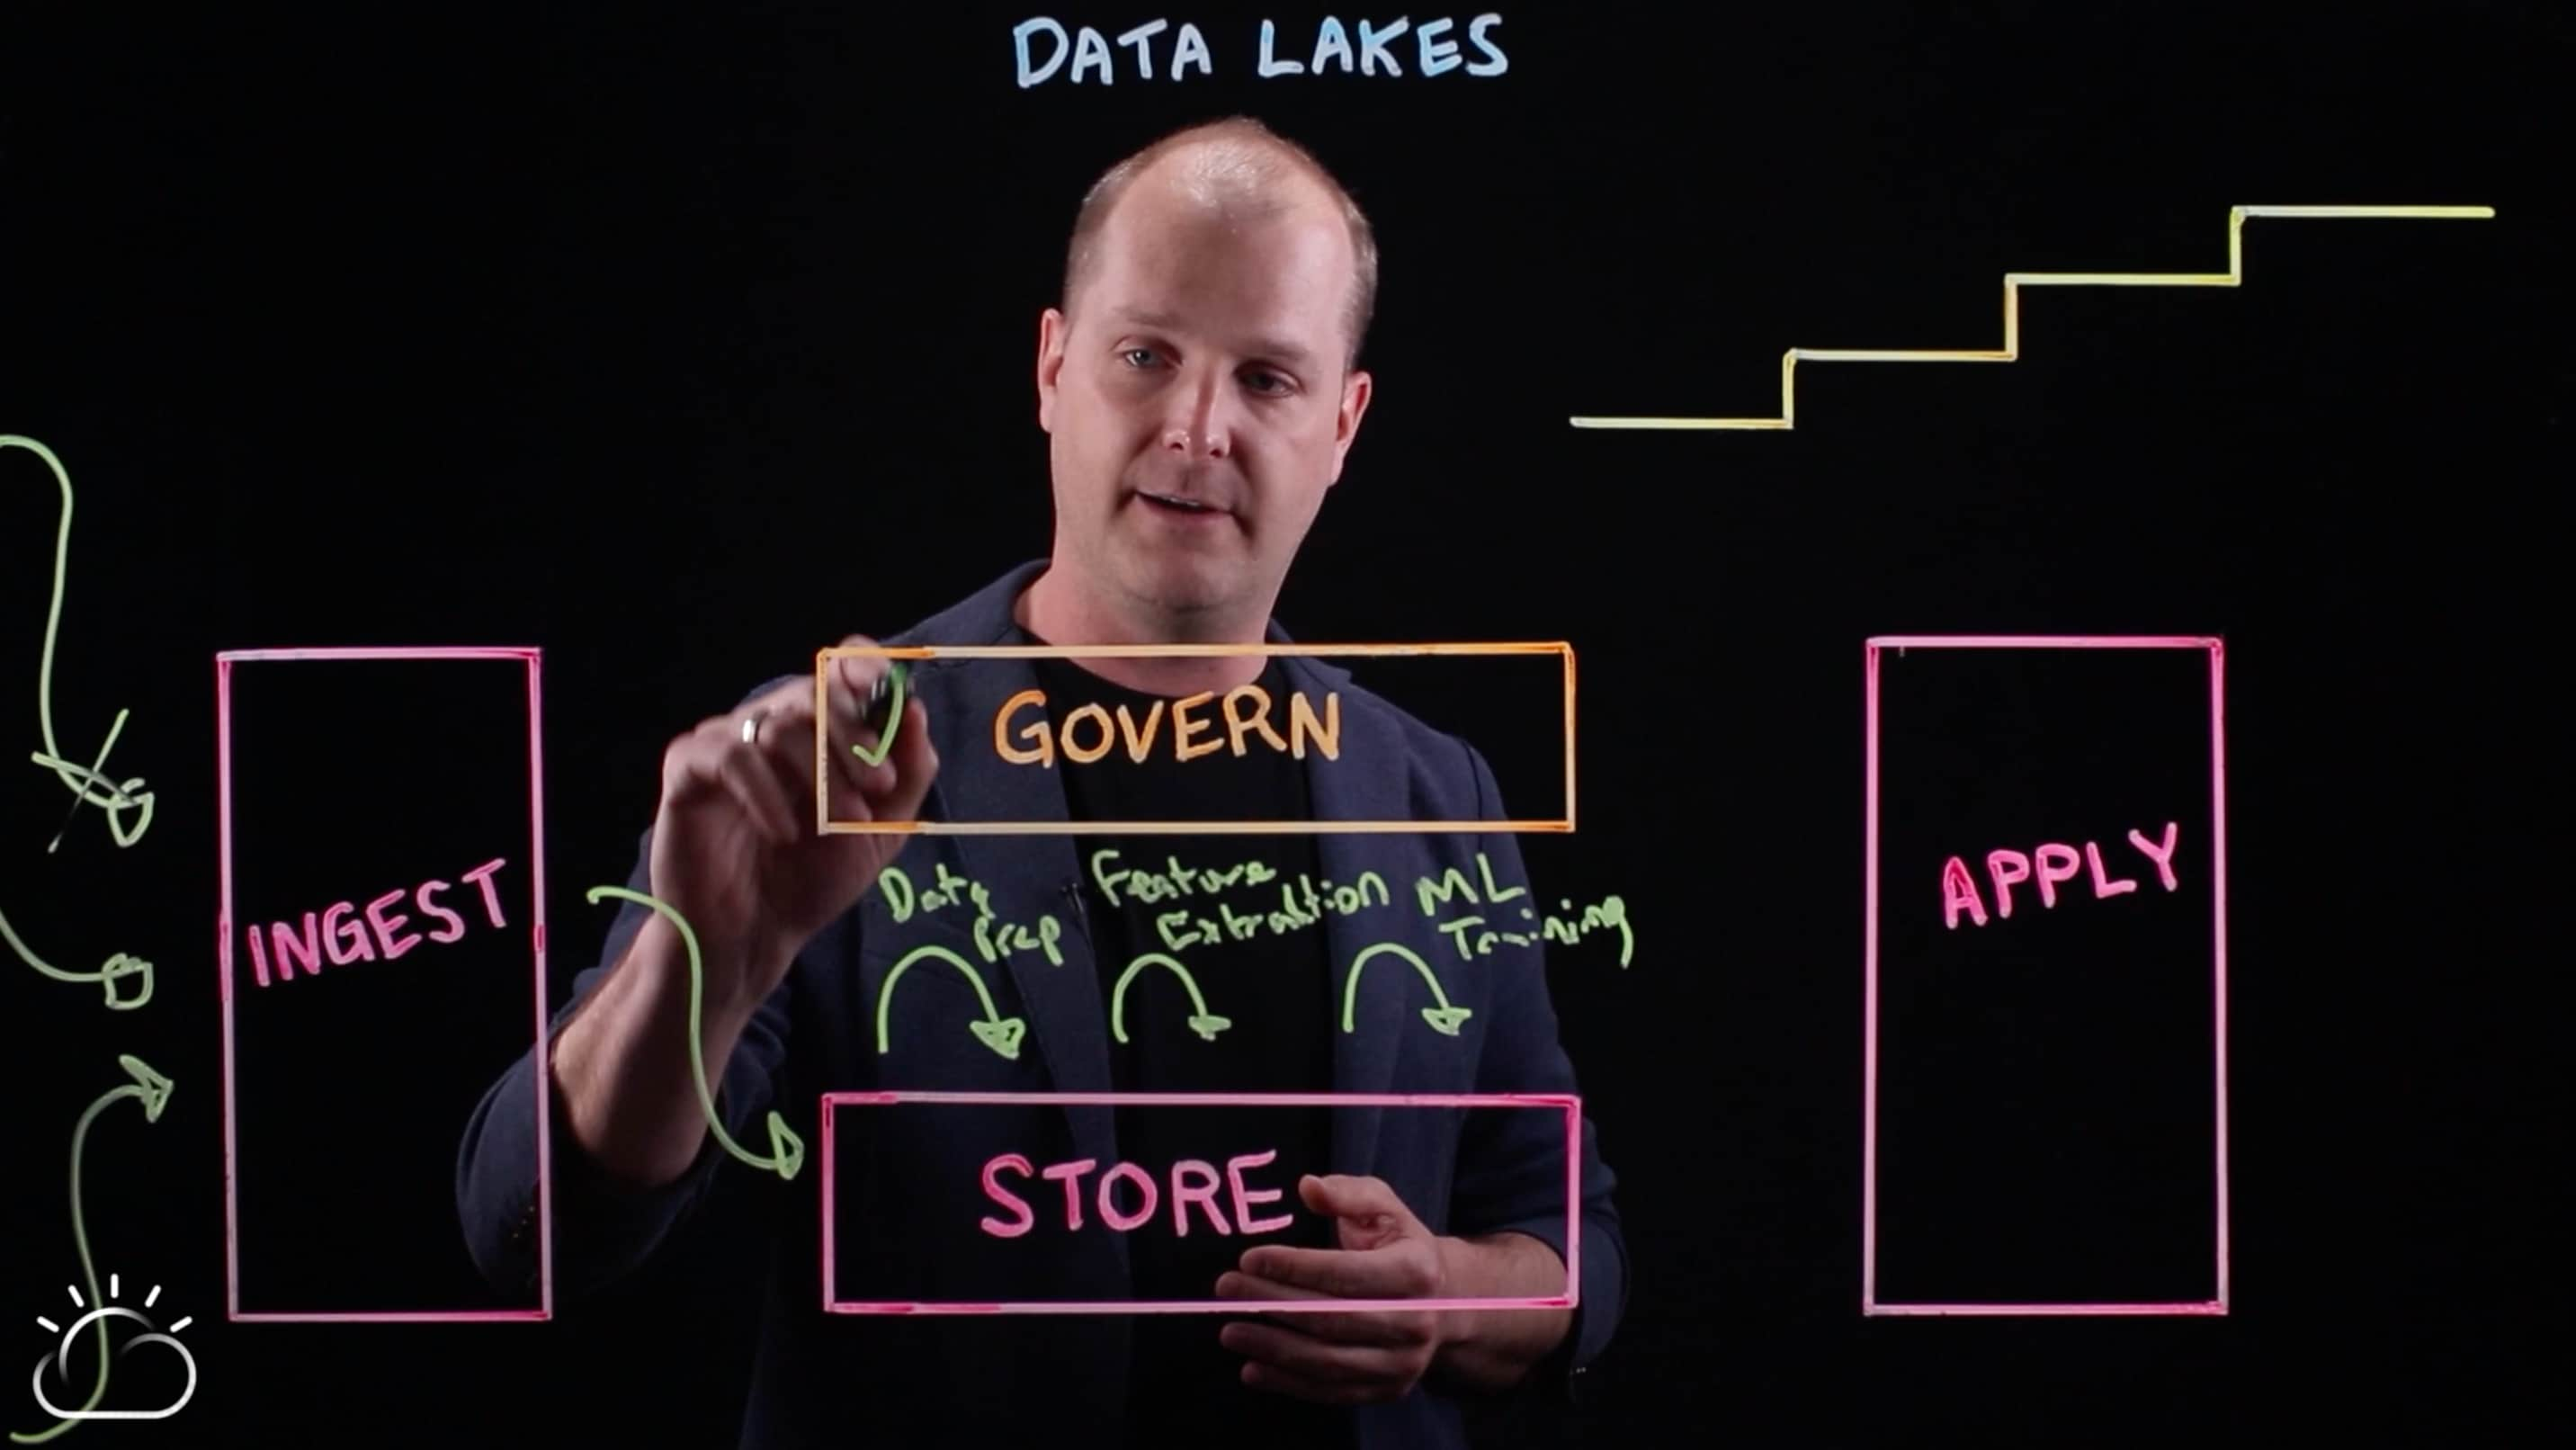 Data lakes governance